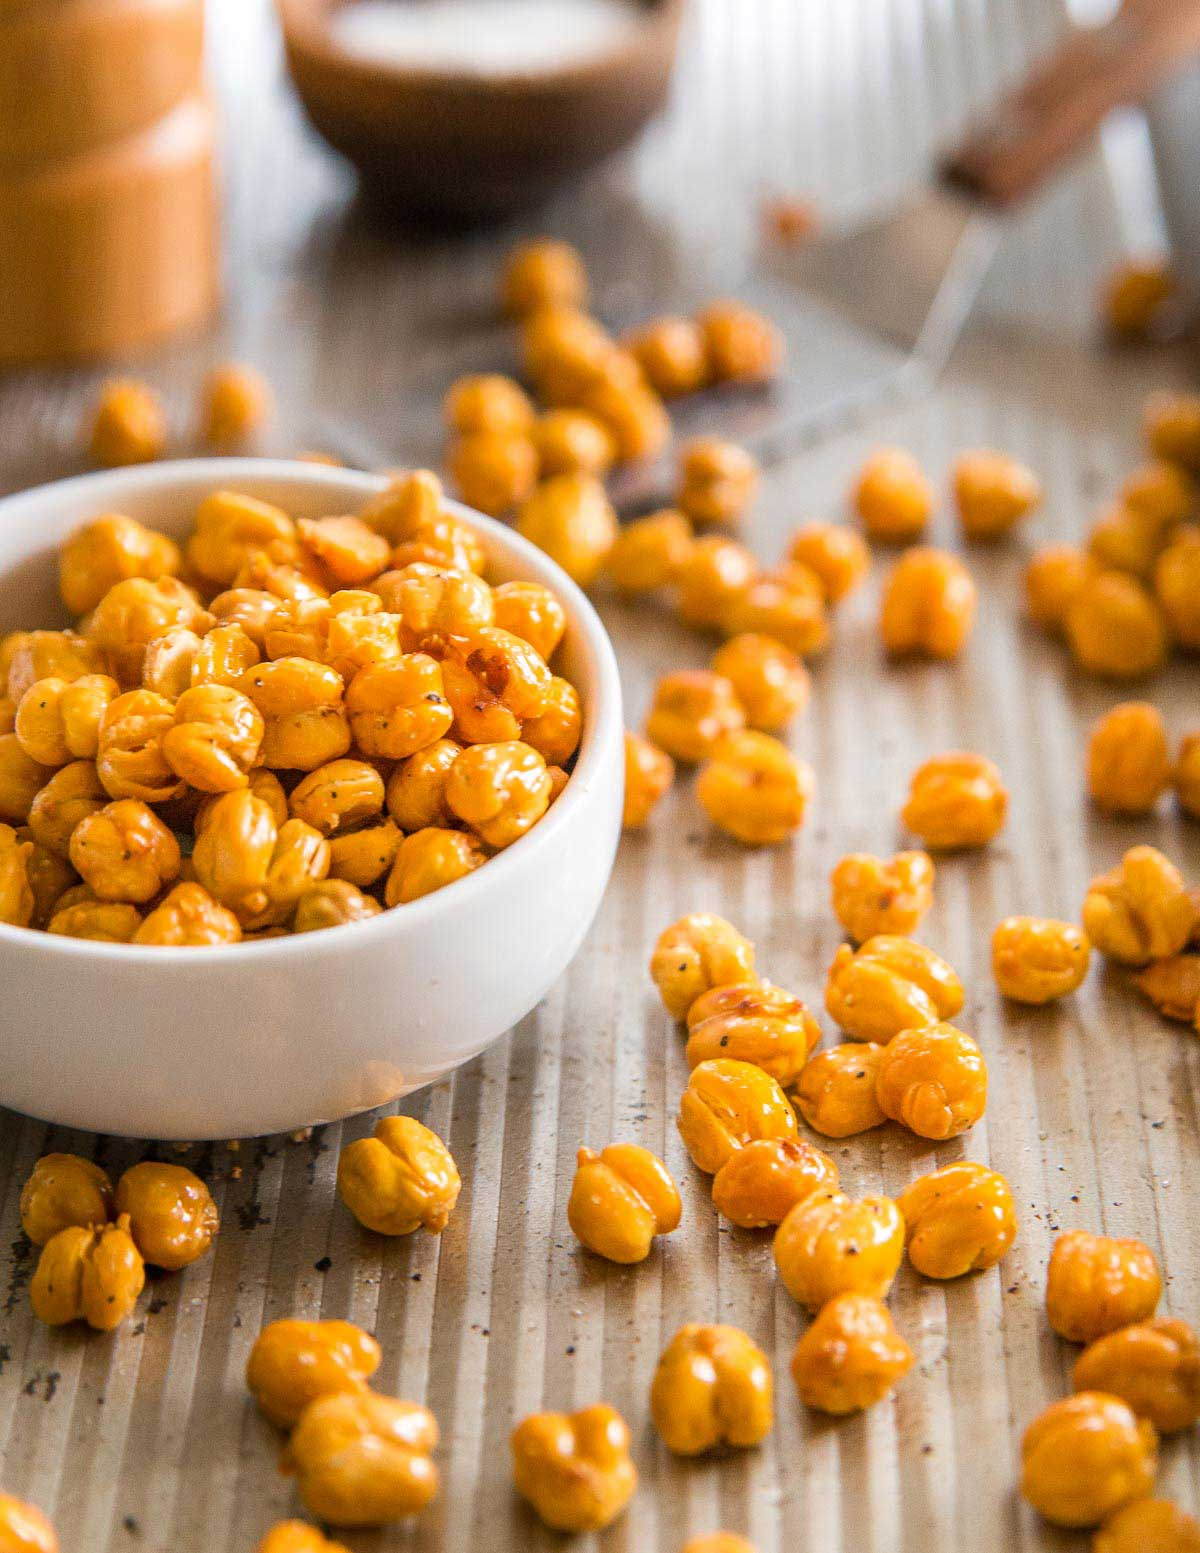 Use this simple method and learn how to make roasted chickpeas perfectly every time.